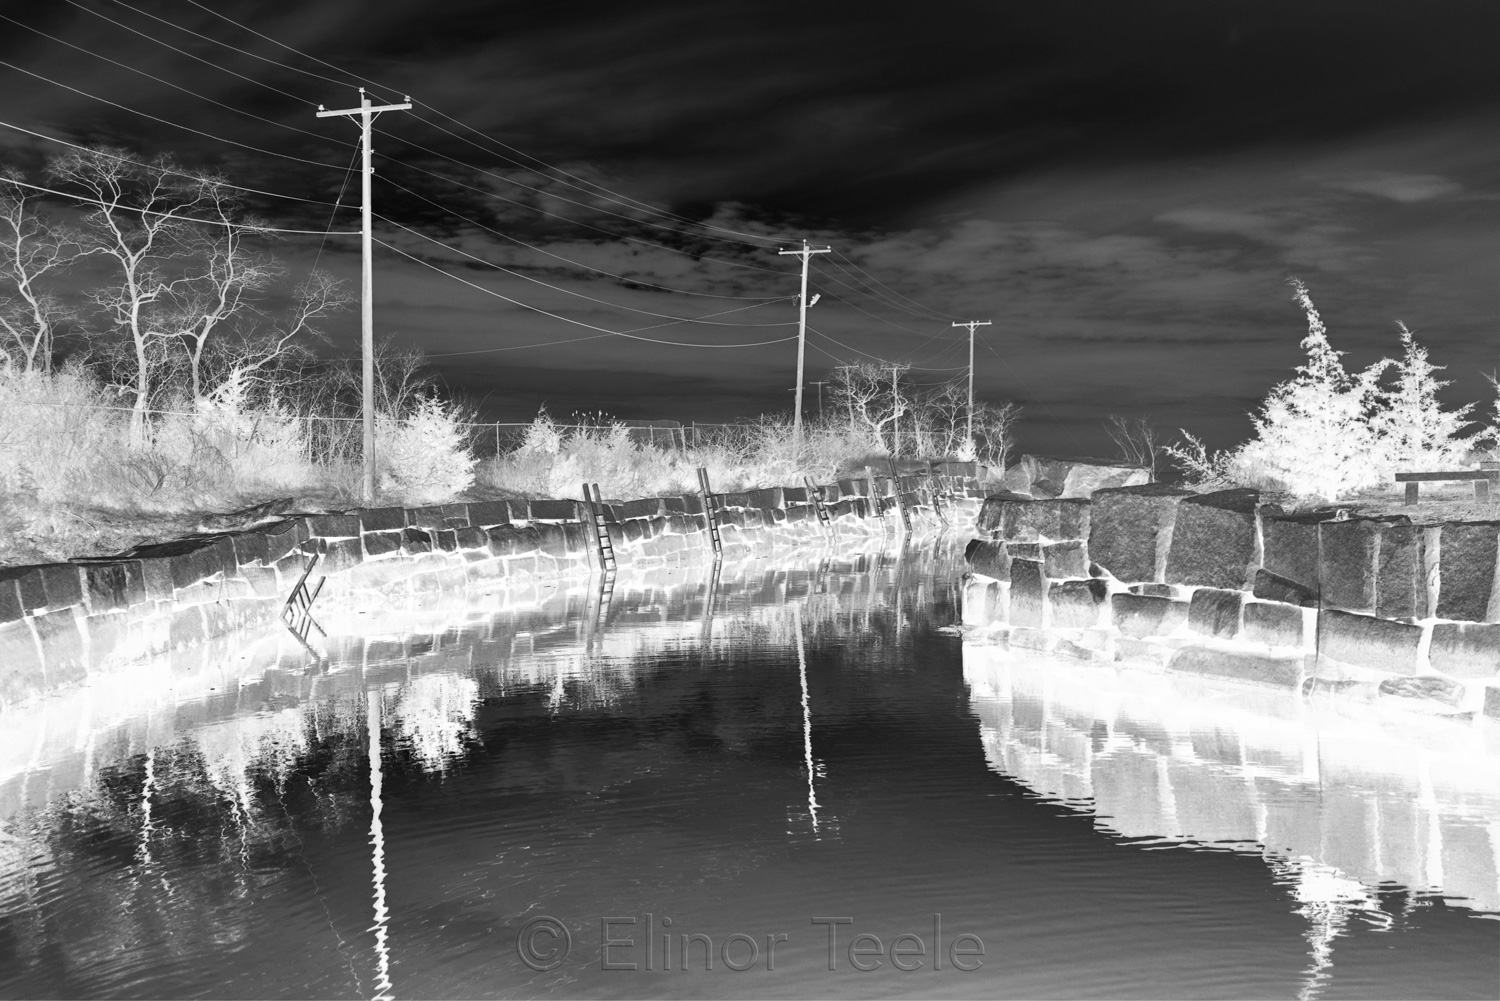 Hodgkins Cove - Black & White Abstract